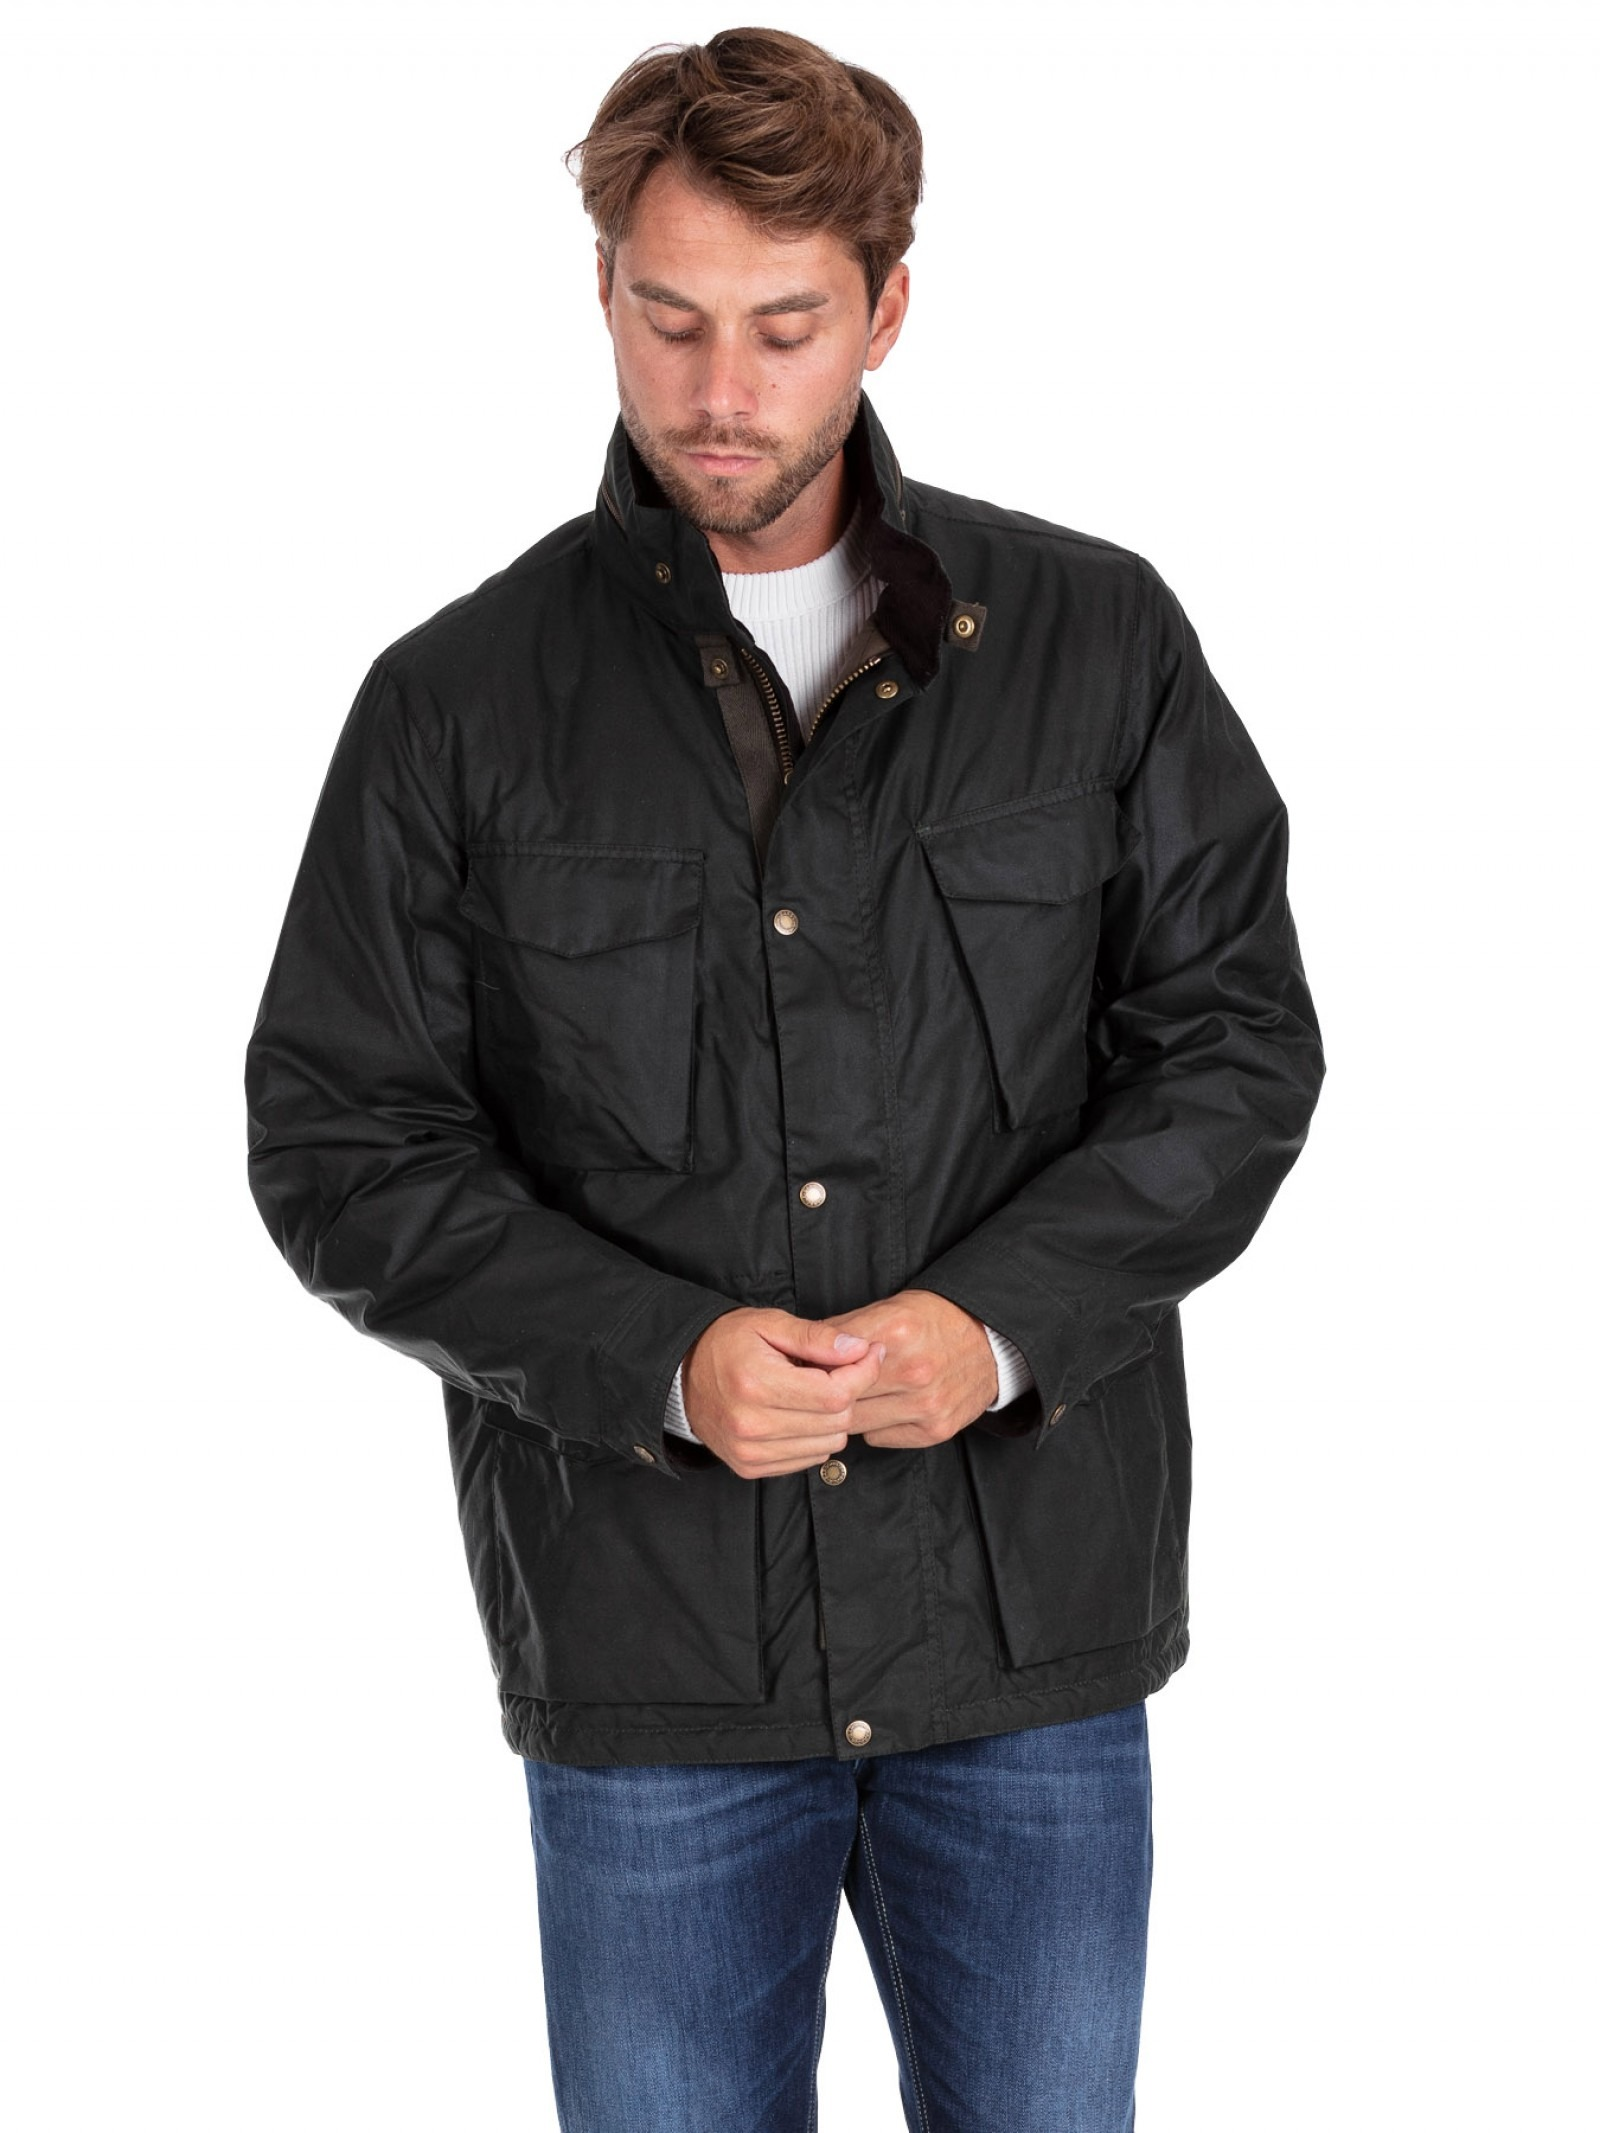 MWX1695-ROBLE-SG51 - Barbour - I8920